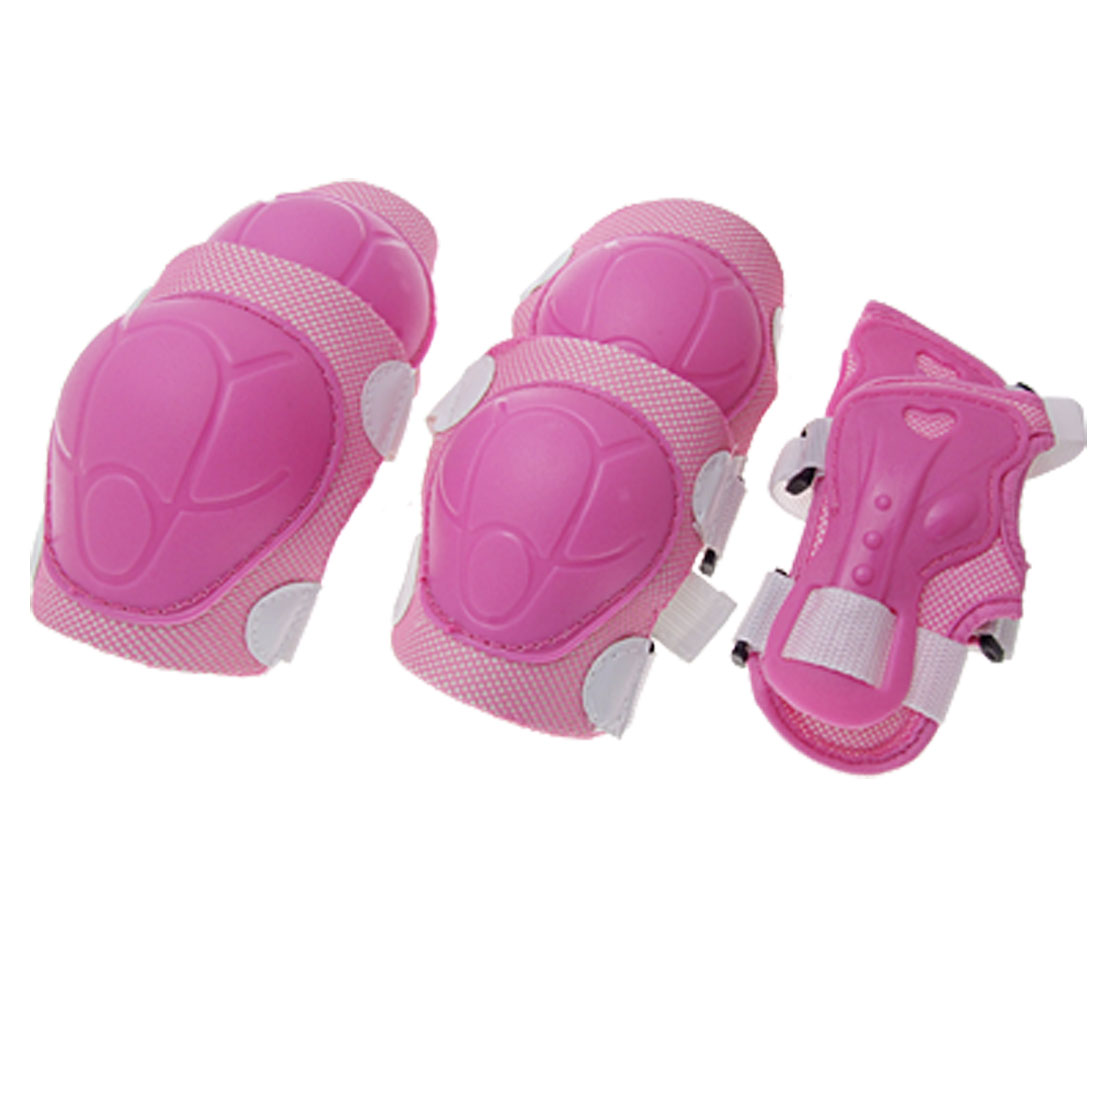 Pink Sports Protective Knee Wrist Elbow Support Set for Children